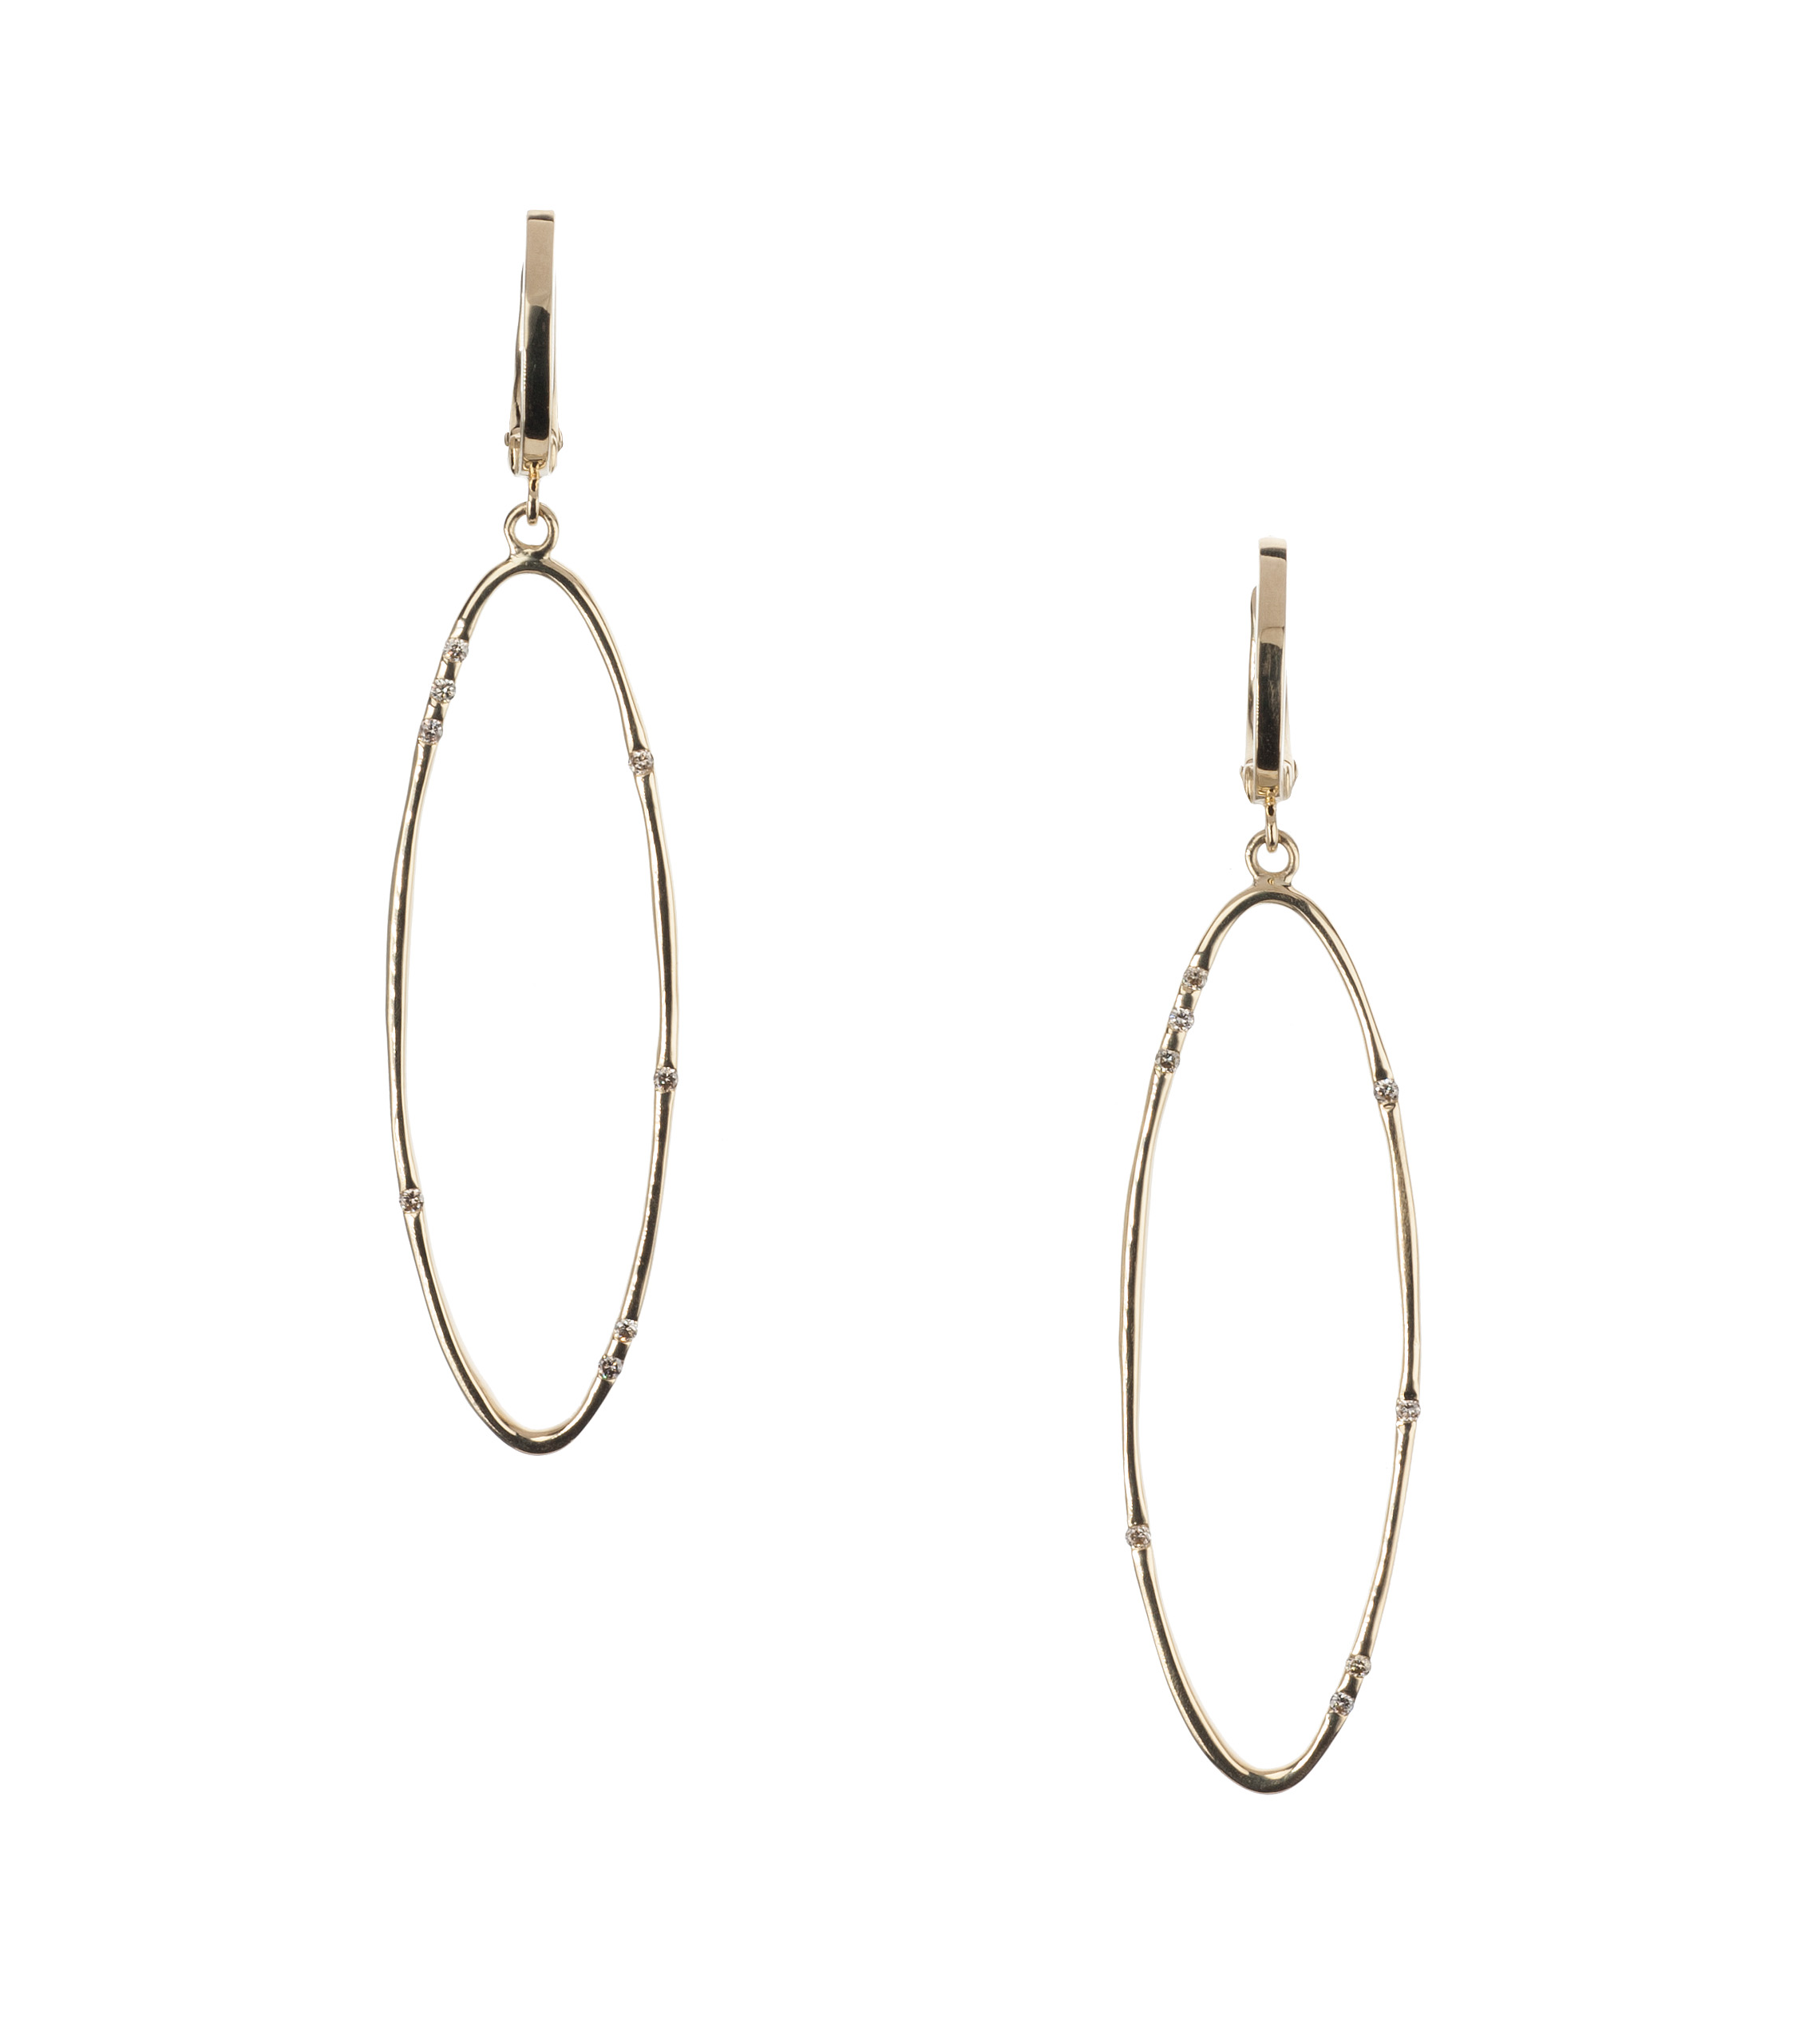 Oval diamond drop earrings in 18-karat yellow gold